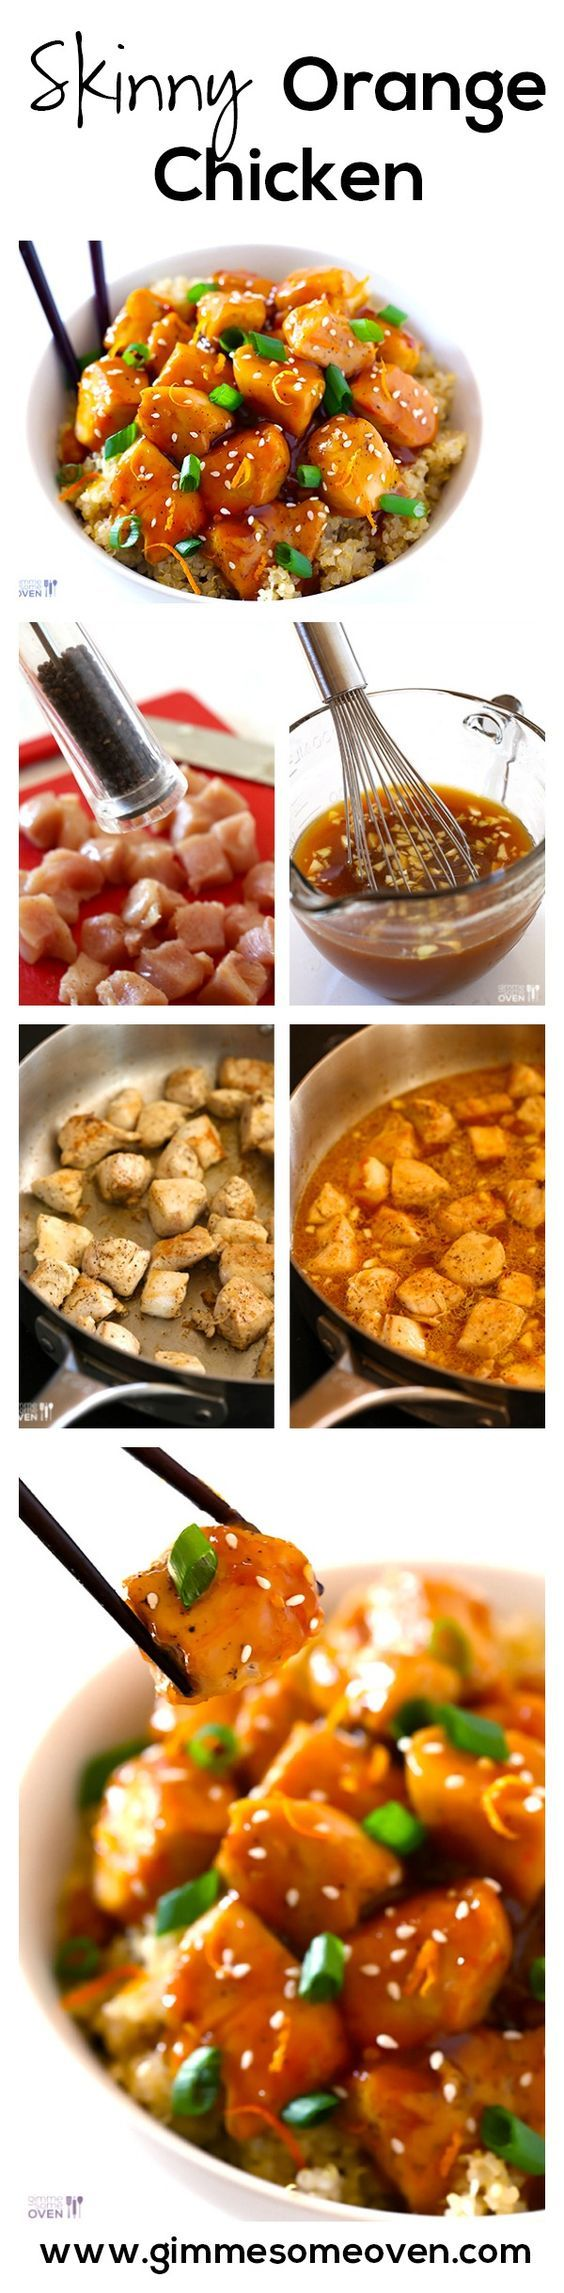 This easy Skinny Orange Chicken recipe is full of the amazing flavor you love, but not all of the typical restaurant-style calories! Yummy!!!